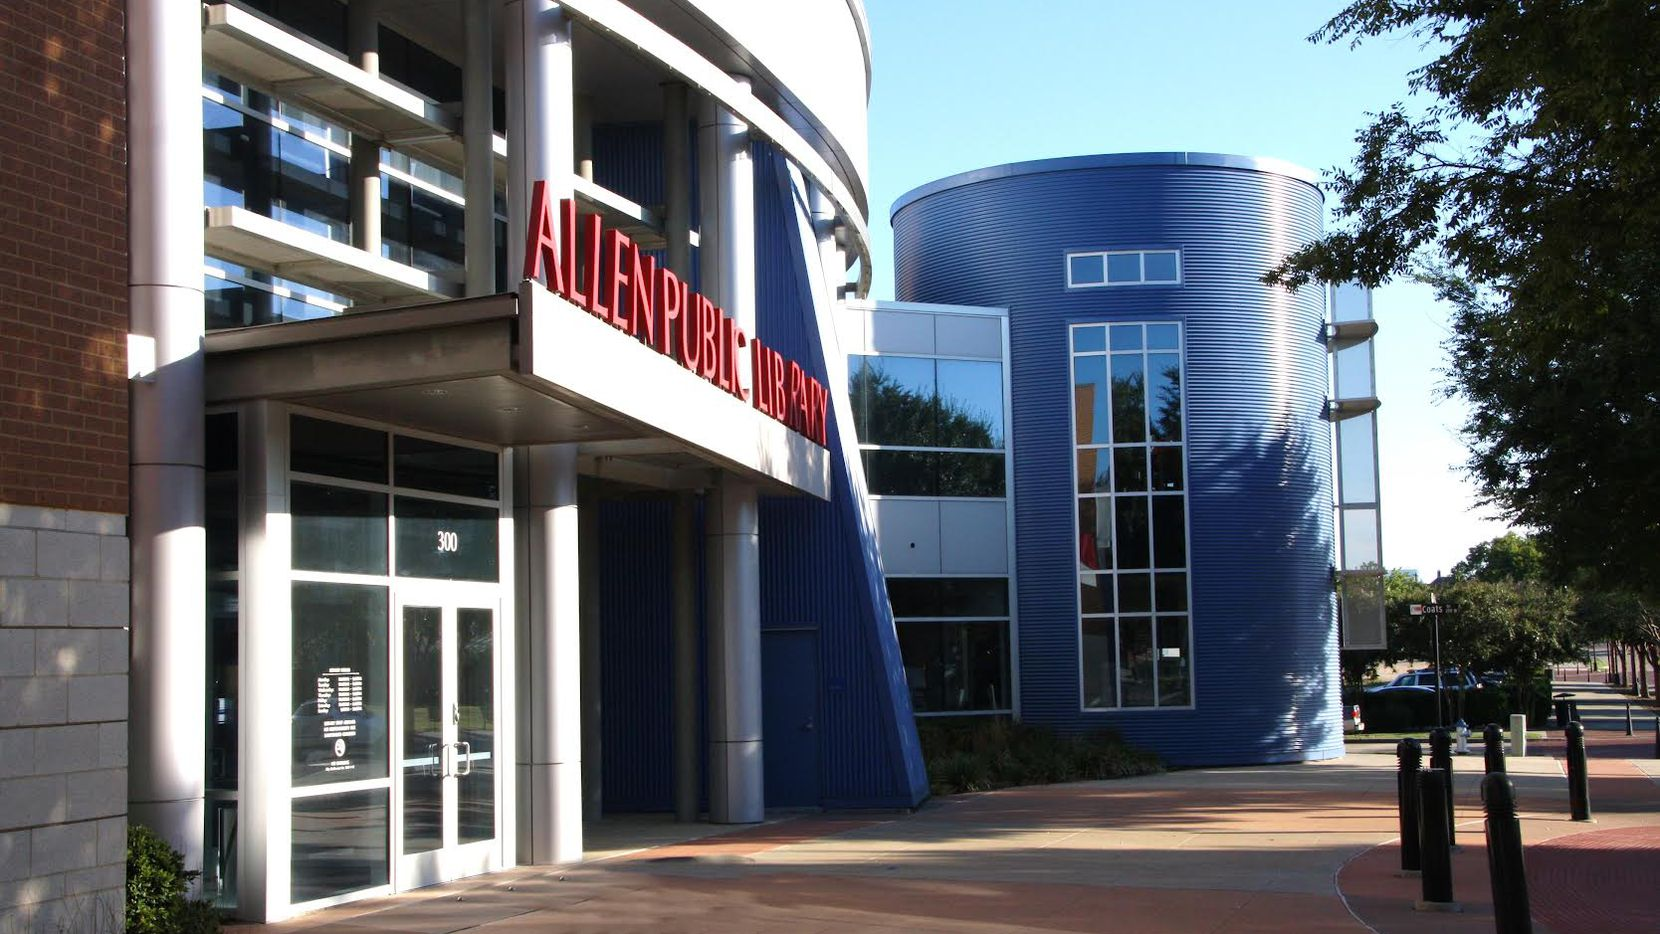 Allen is seeking resident input on a future library expansion project.